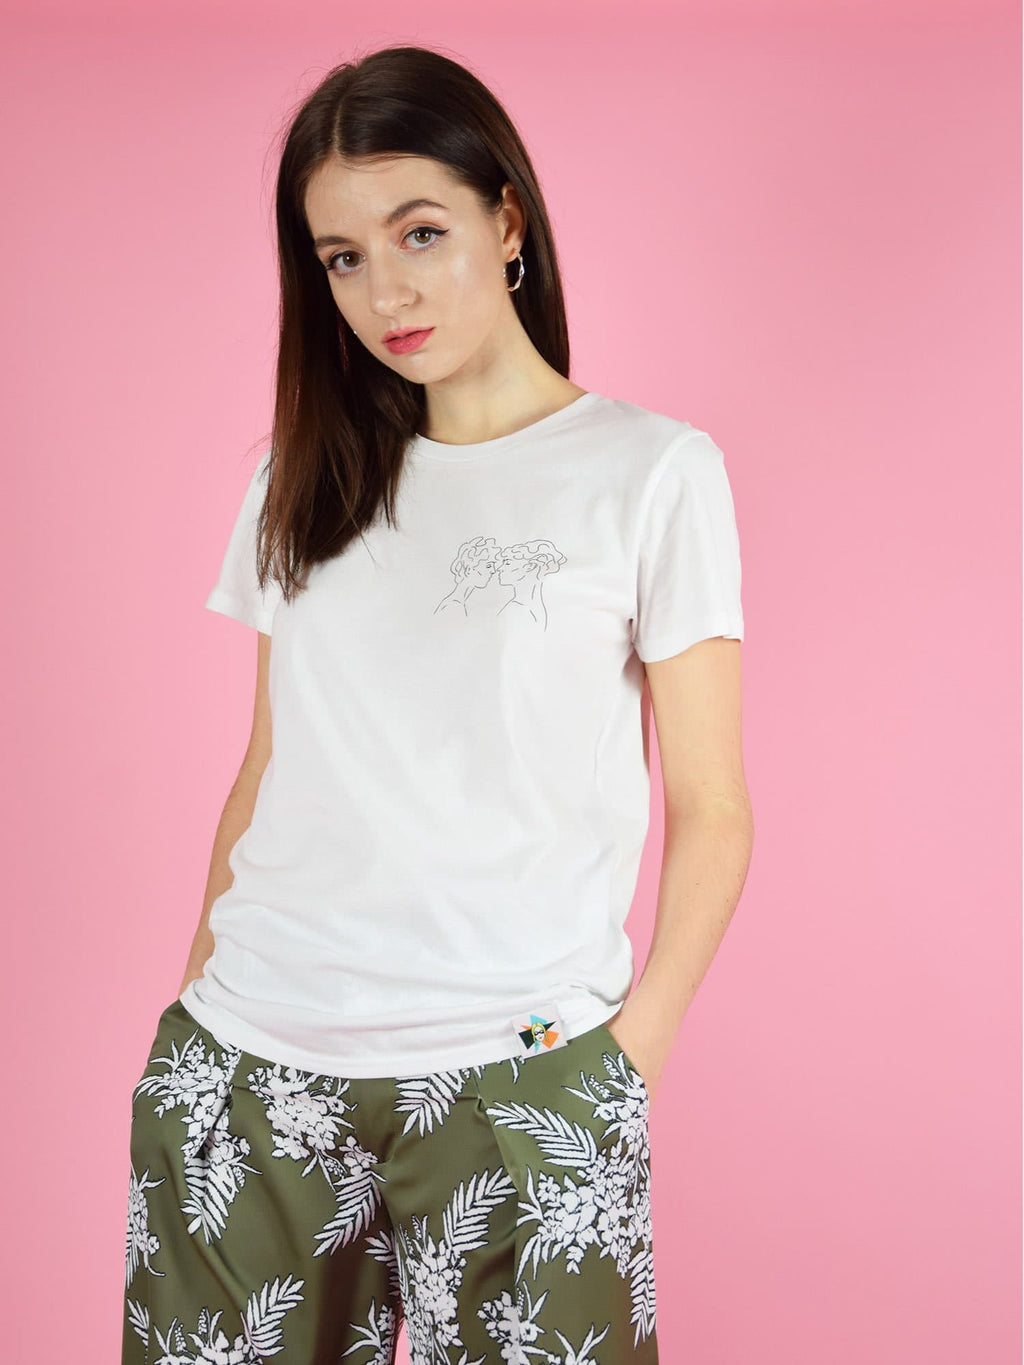 Lover's tee in white. The t-shirt features a subtle graphic print on the chest of two people about to kiss and a branded woven label on the hem.